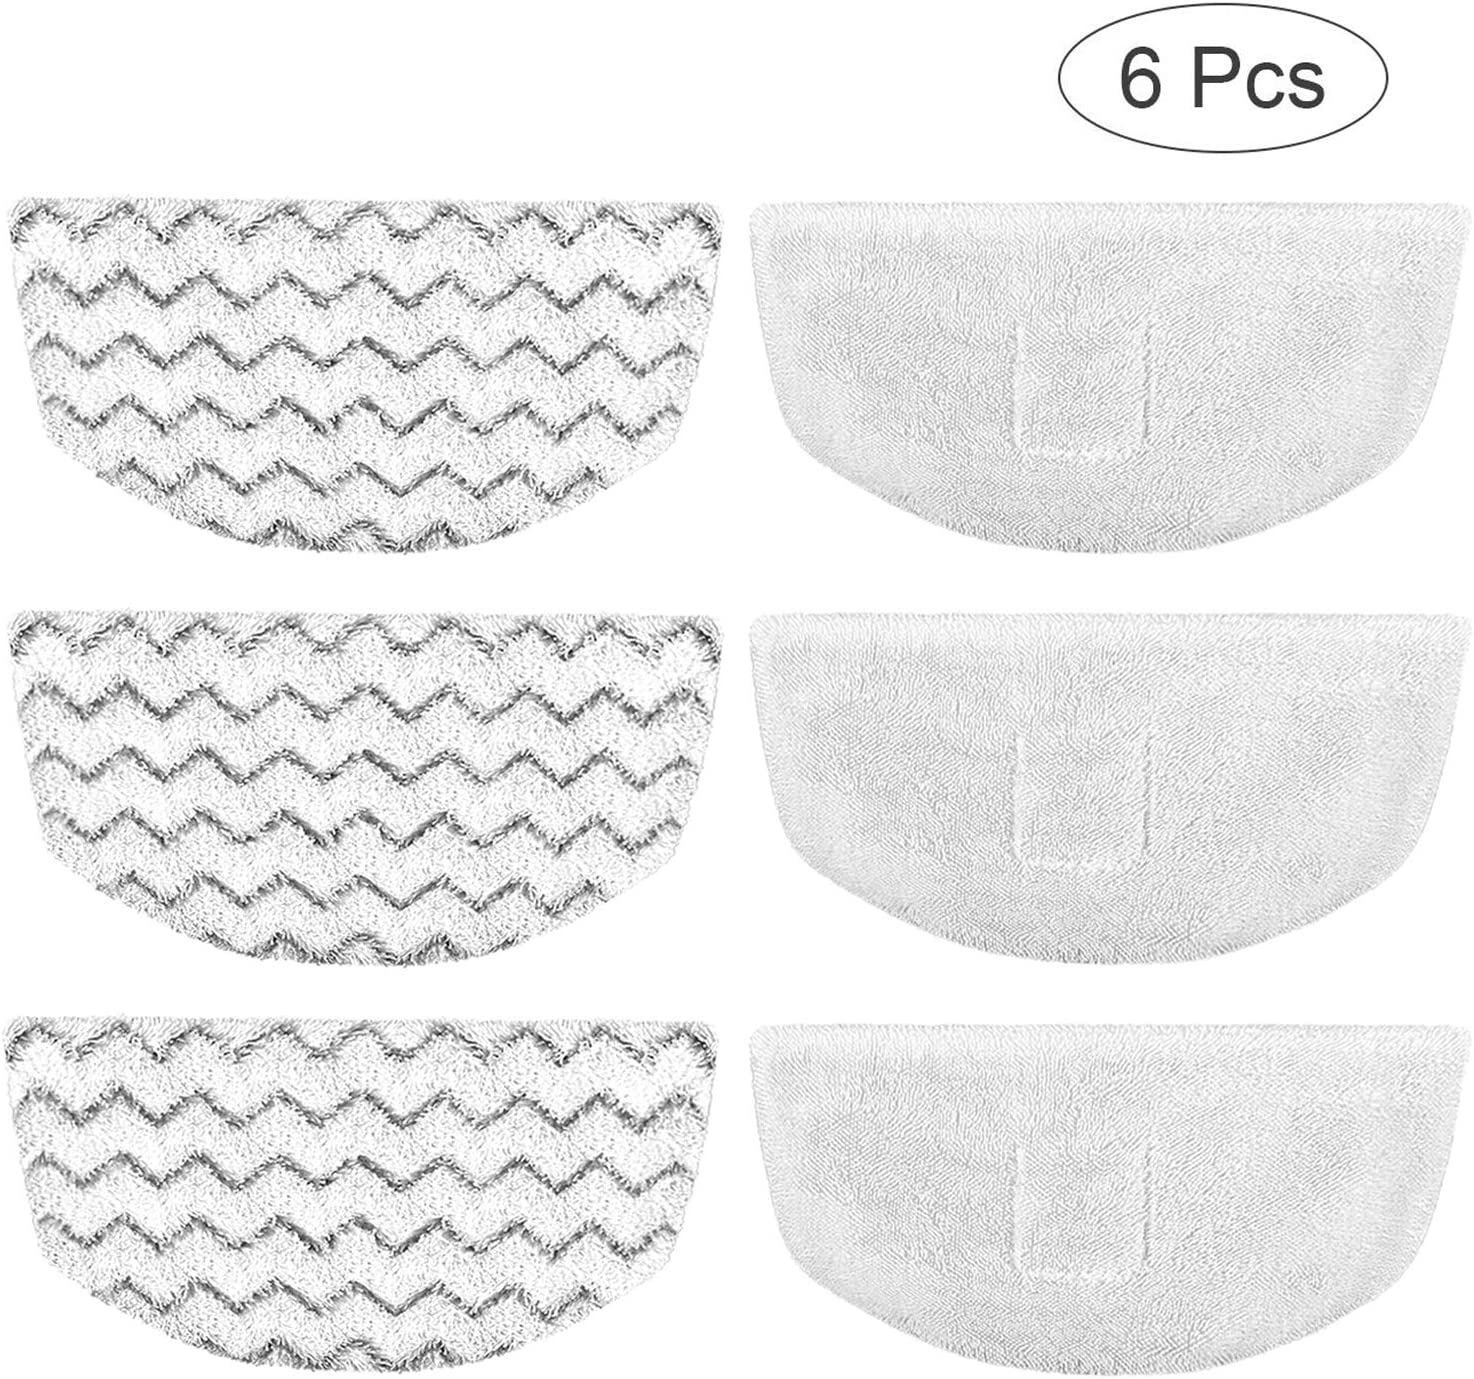 Bissell Steam Mop Pads 6pk Replacement/Washable/Reusable Compatible with Bissell Steam Mop 1940/1440/1544/1806/2075 Series, Model 19402/19404/19408/19409/1940a/1940f/1940q/1940t/1940w/B0006/B0017